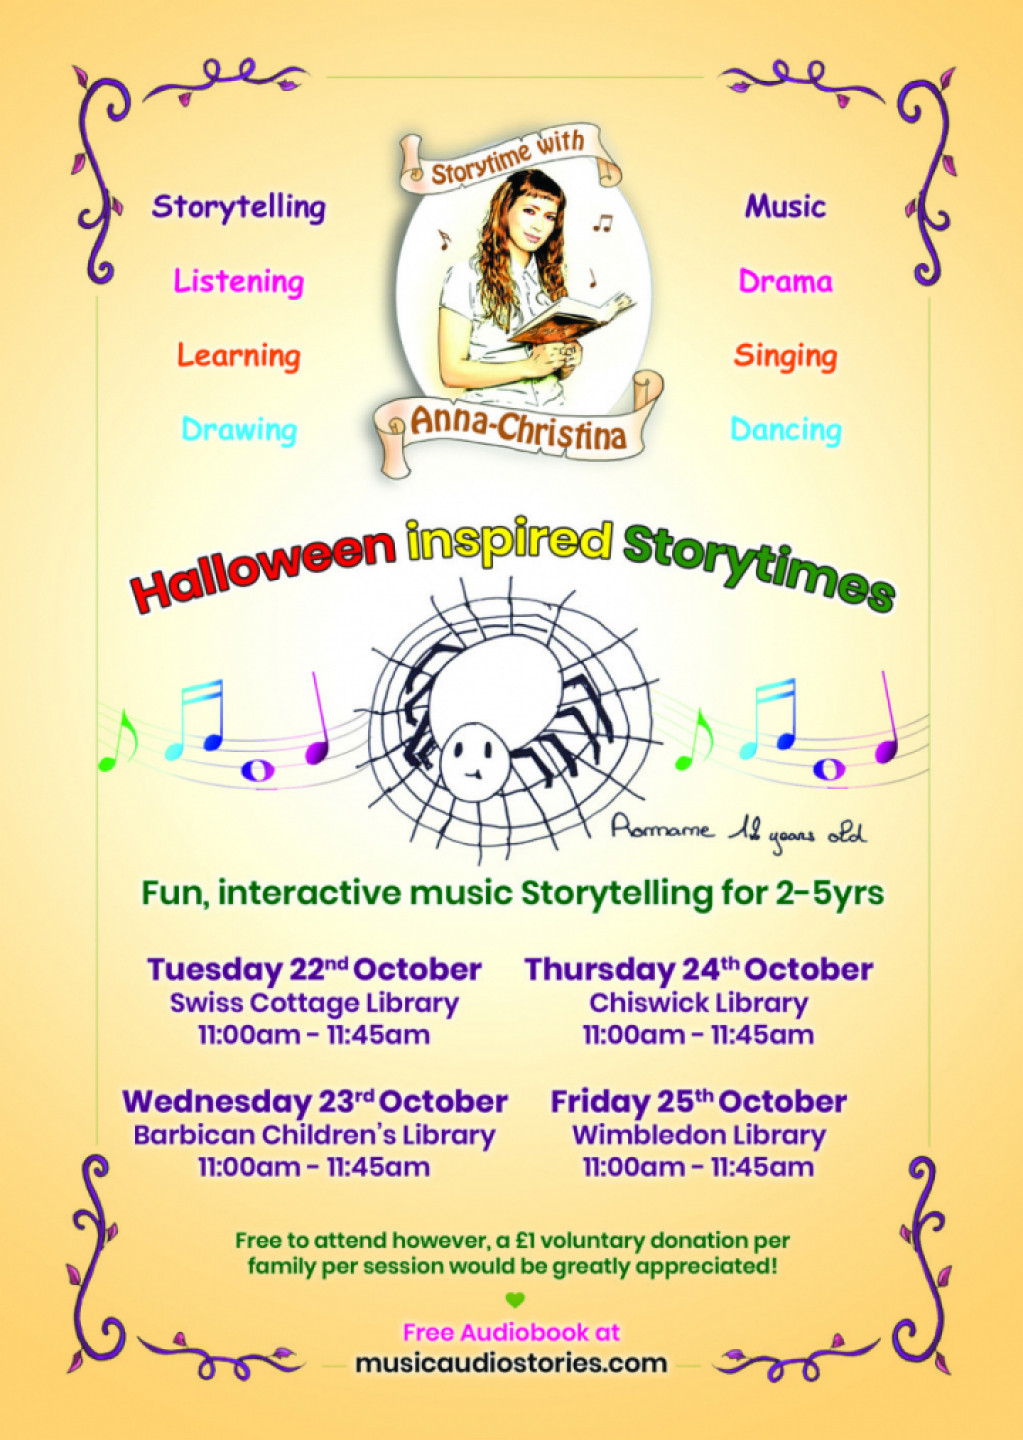 Storytime with Anna-Christina - Halloween Inspired Storytimes!